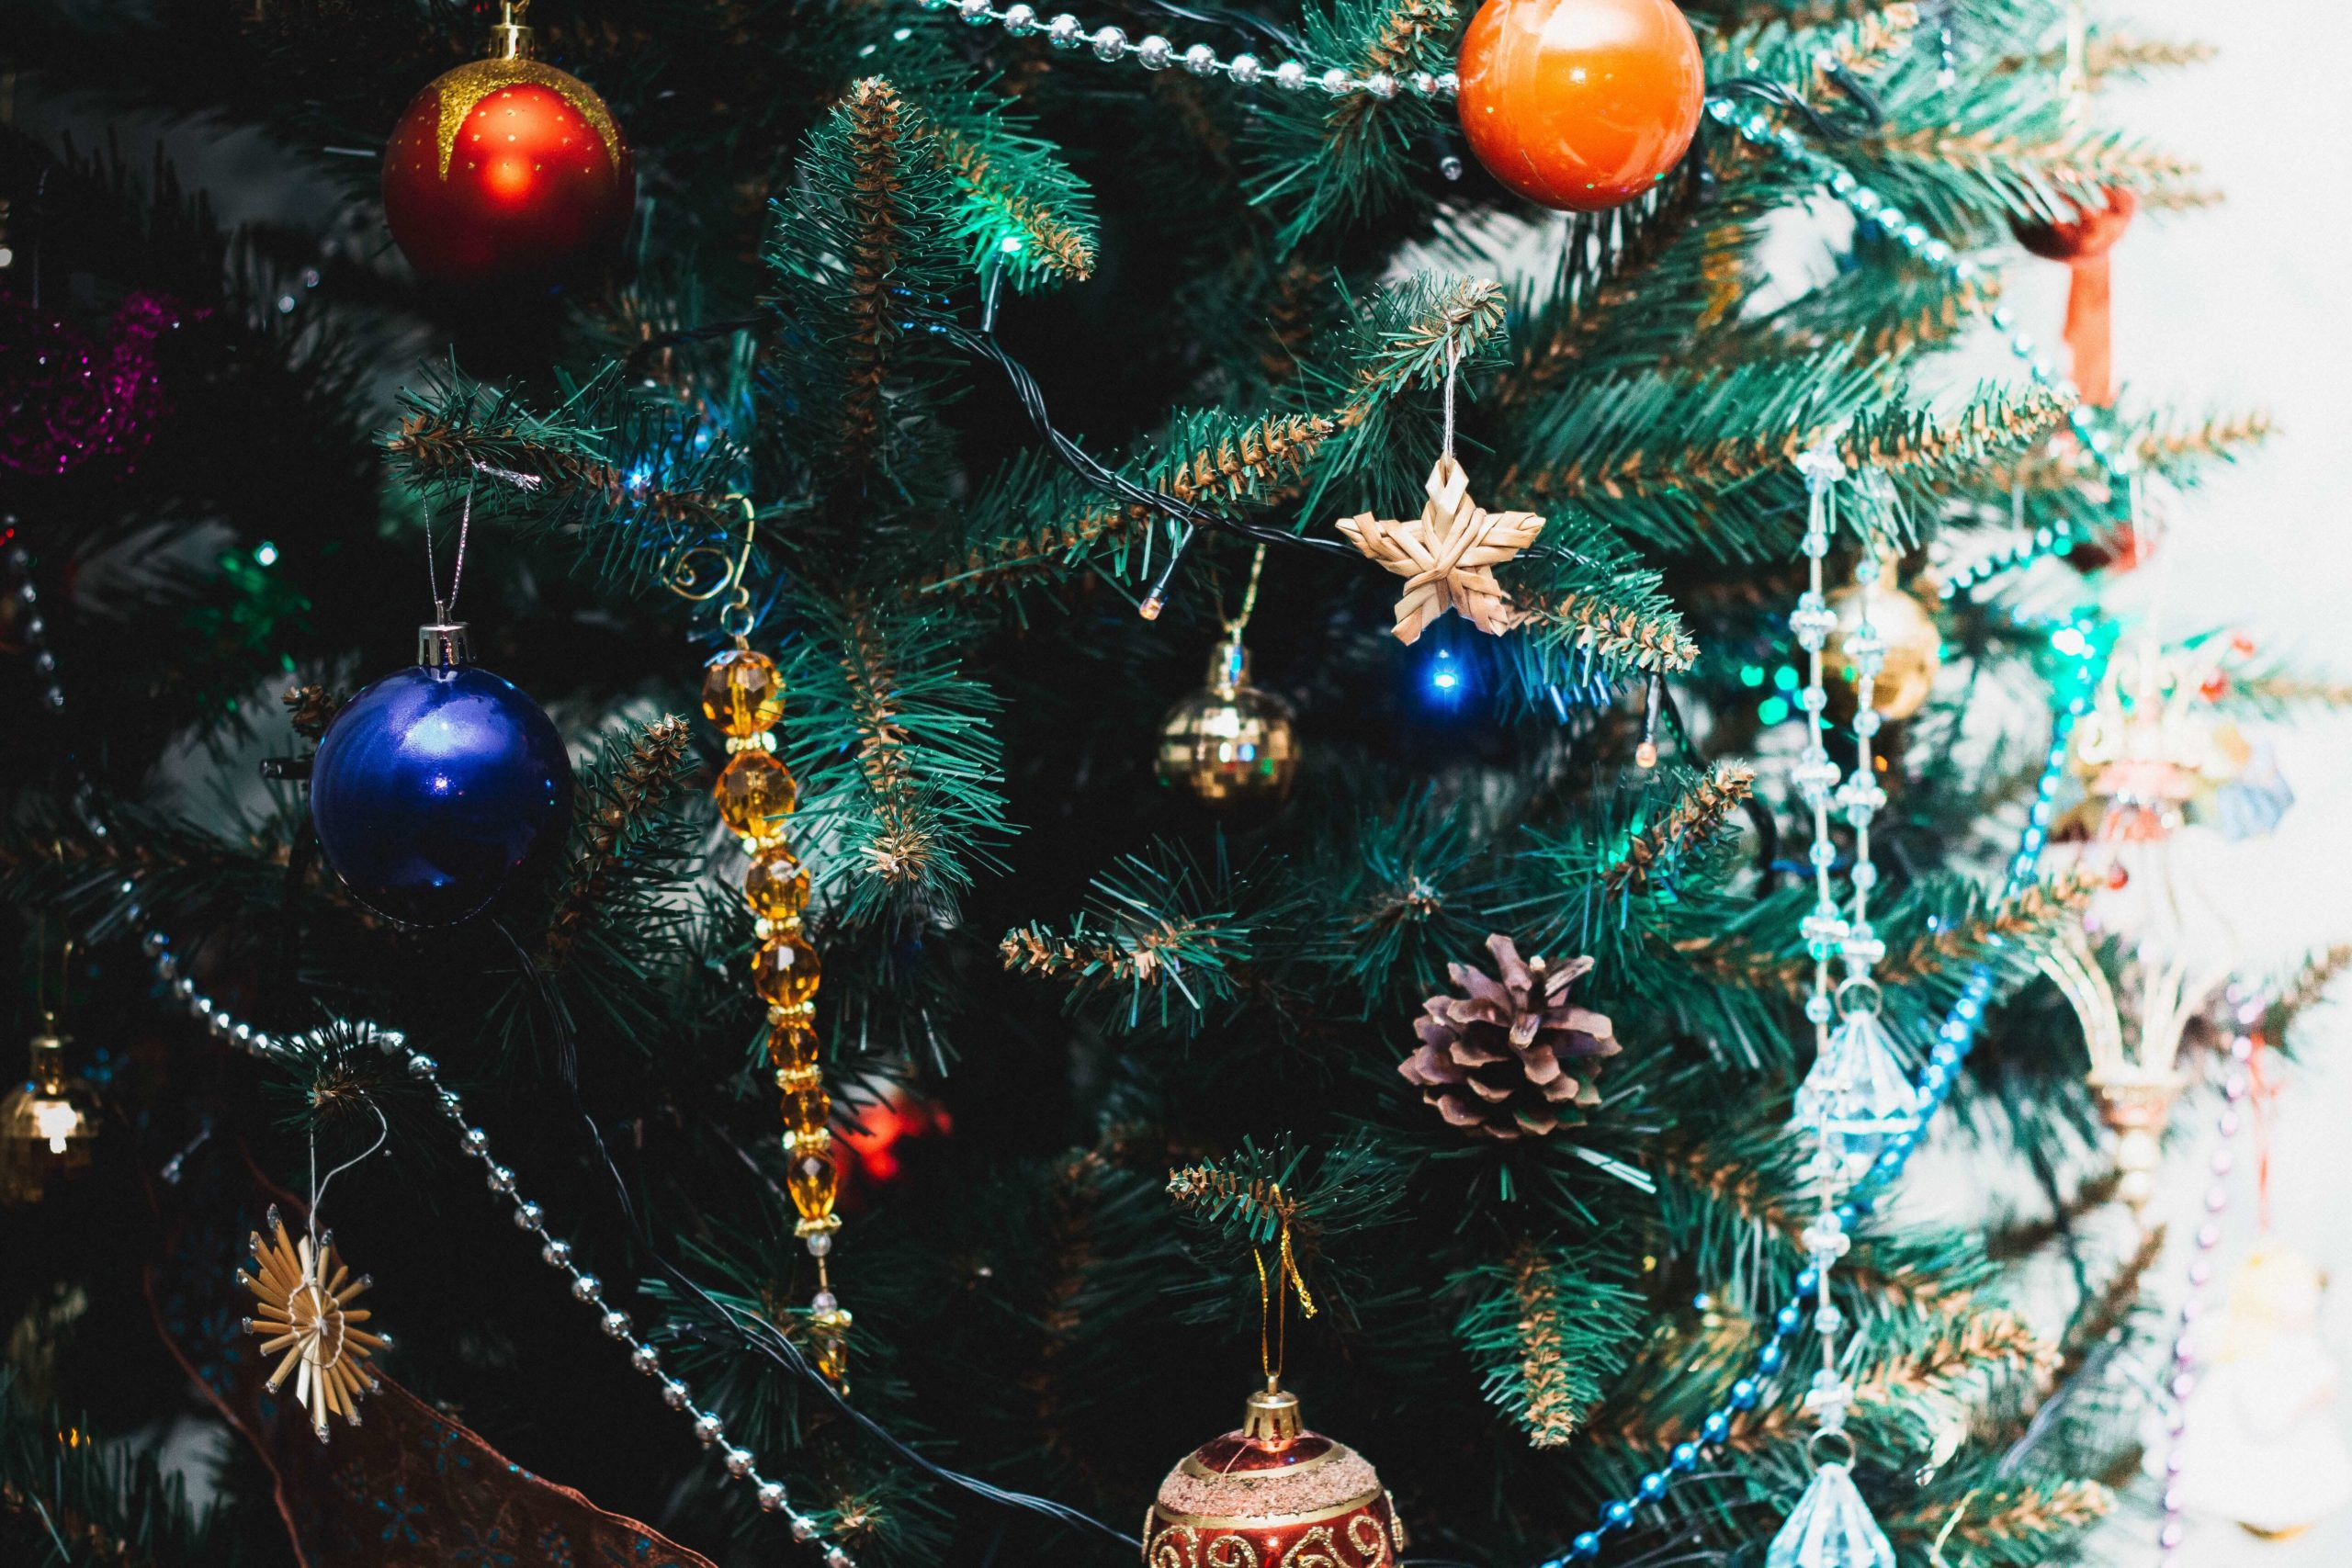 Blog - Cutting Edge Tree Professionals - Getting your christmas tree